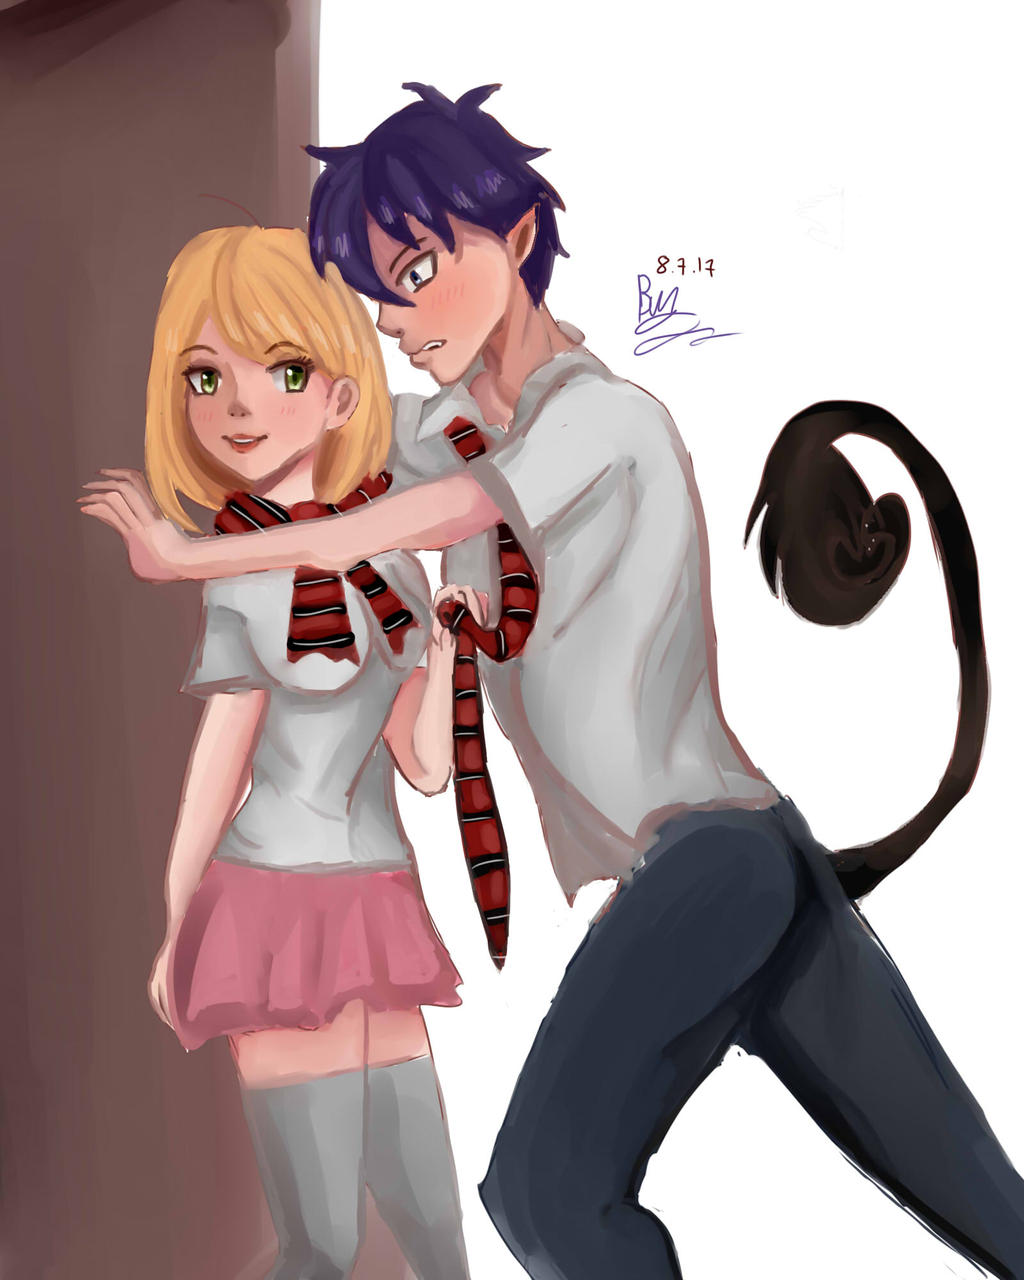 blue exorcist rin and shiemi relationship goals